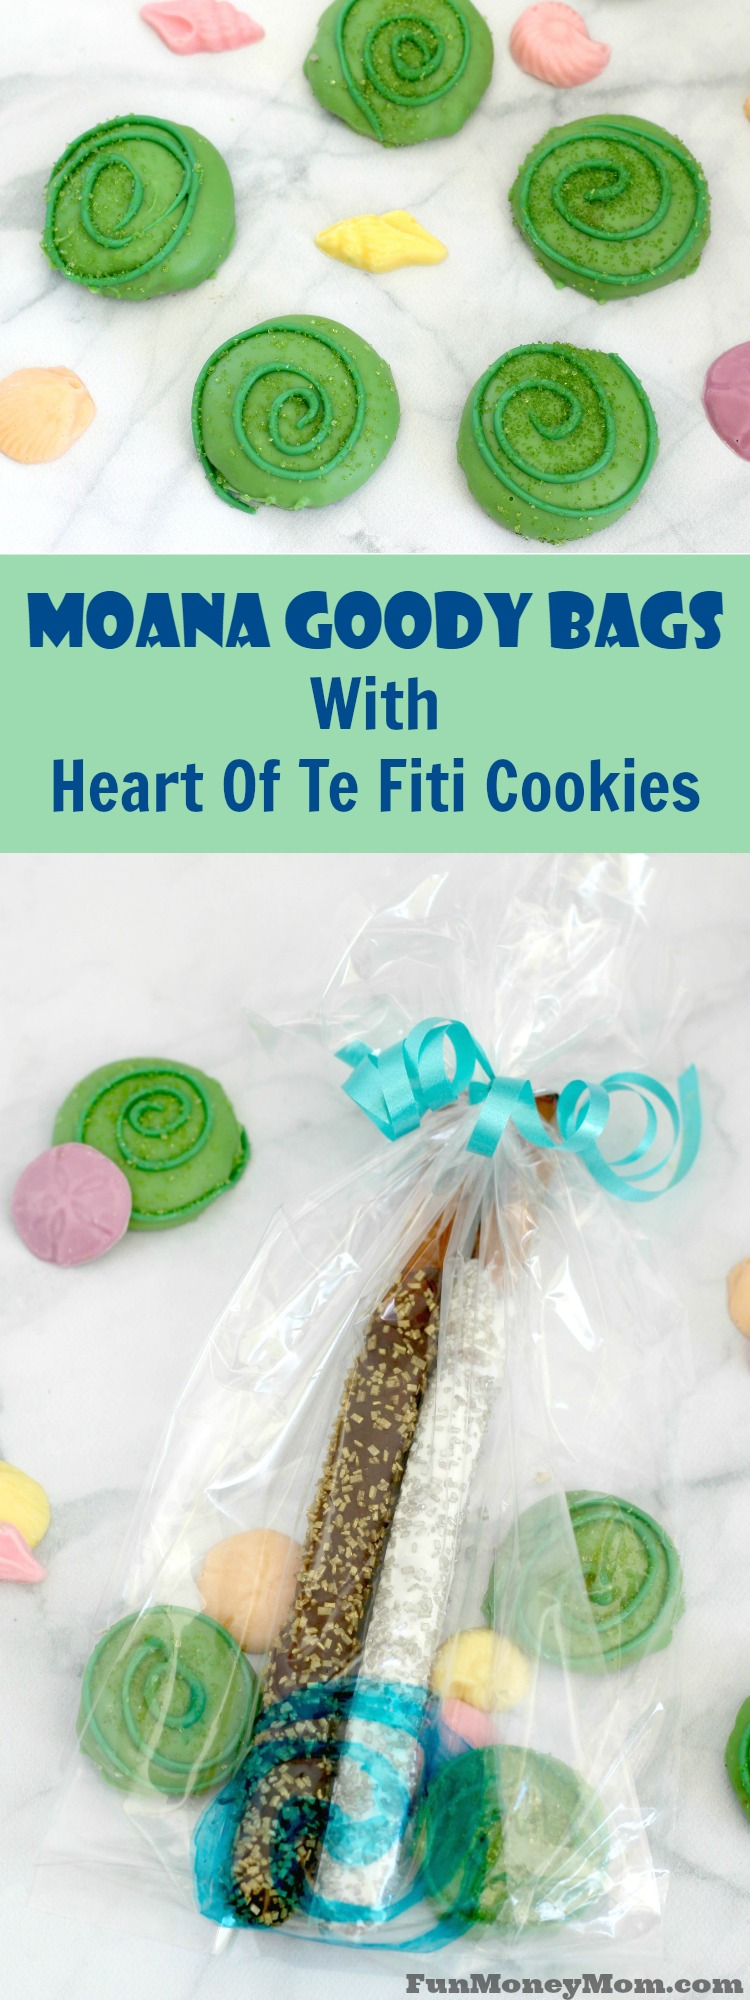 "Moana cookies - These Moana goody bags are perfect for your Moana party with Heart of Te Fiti cookies and ""shiny"" stuff for Tamatoa the crab!"